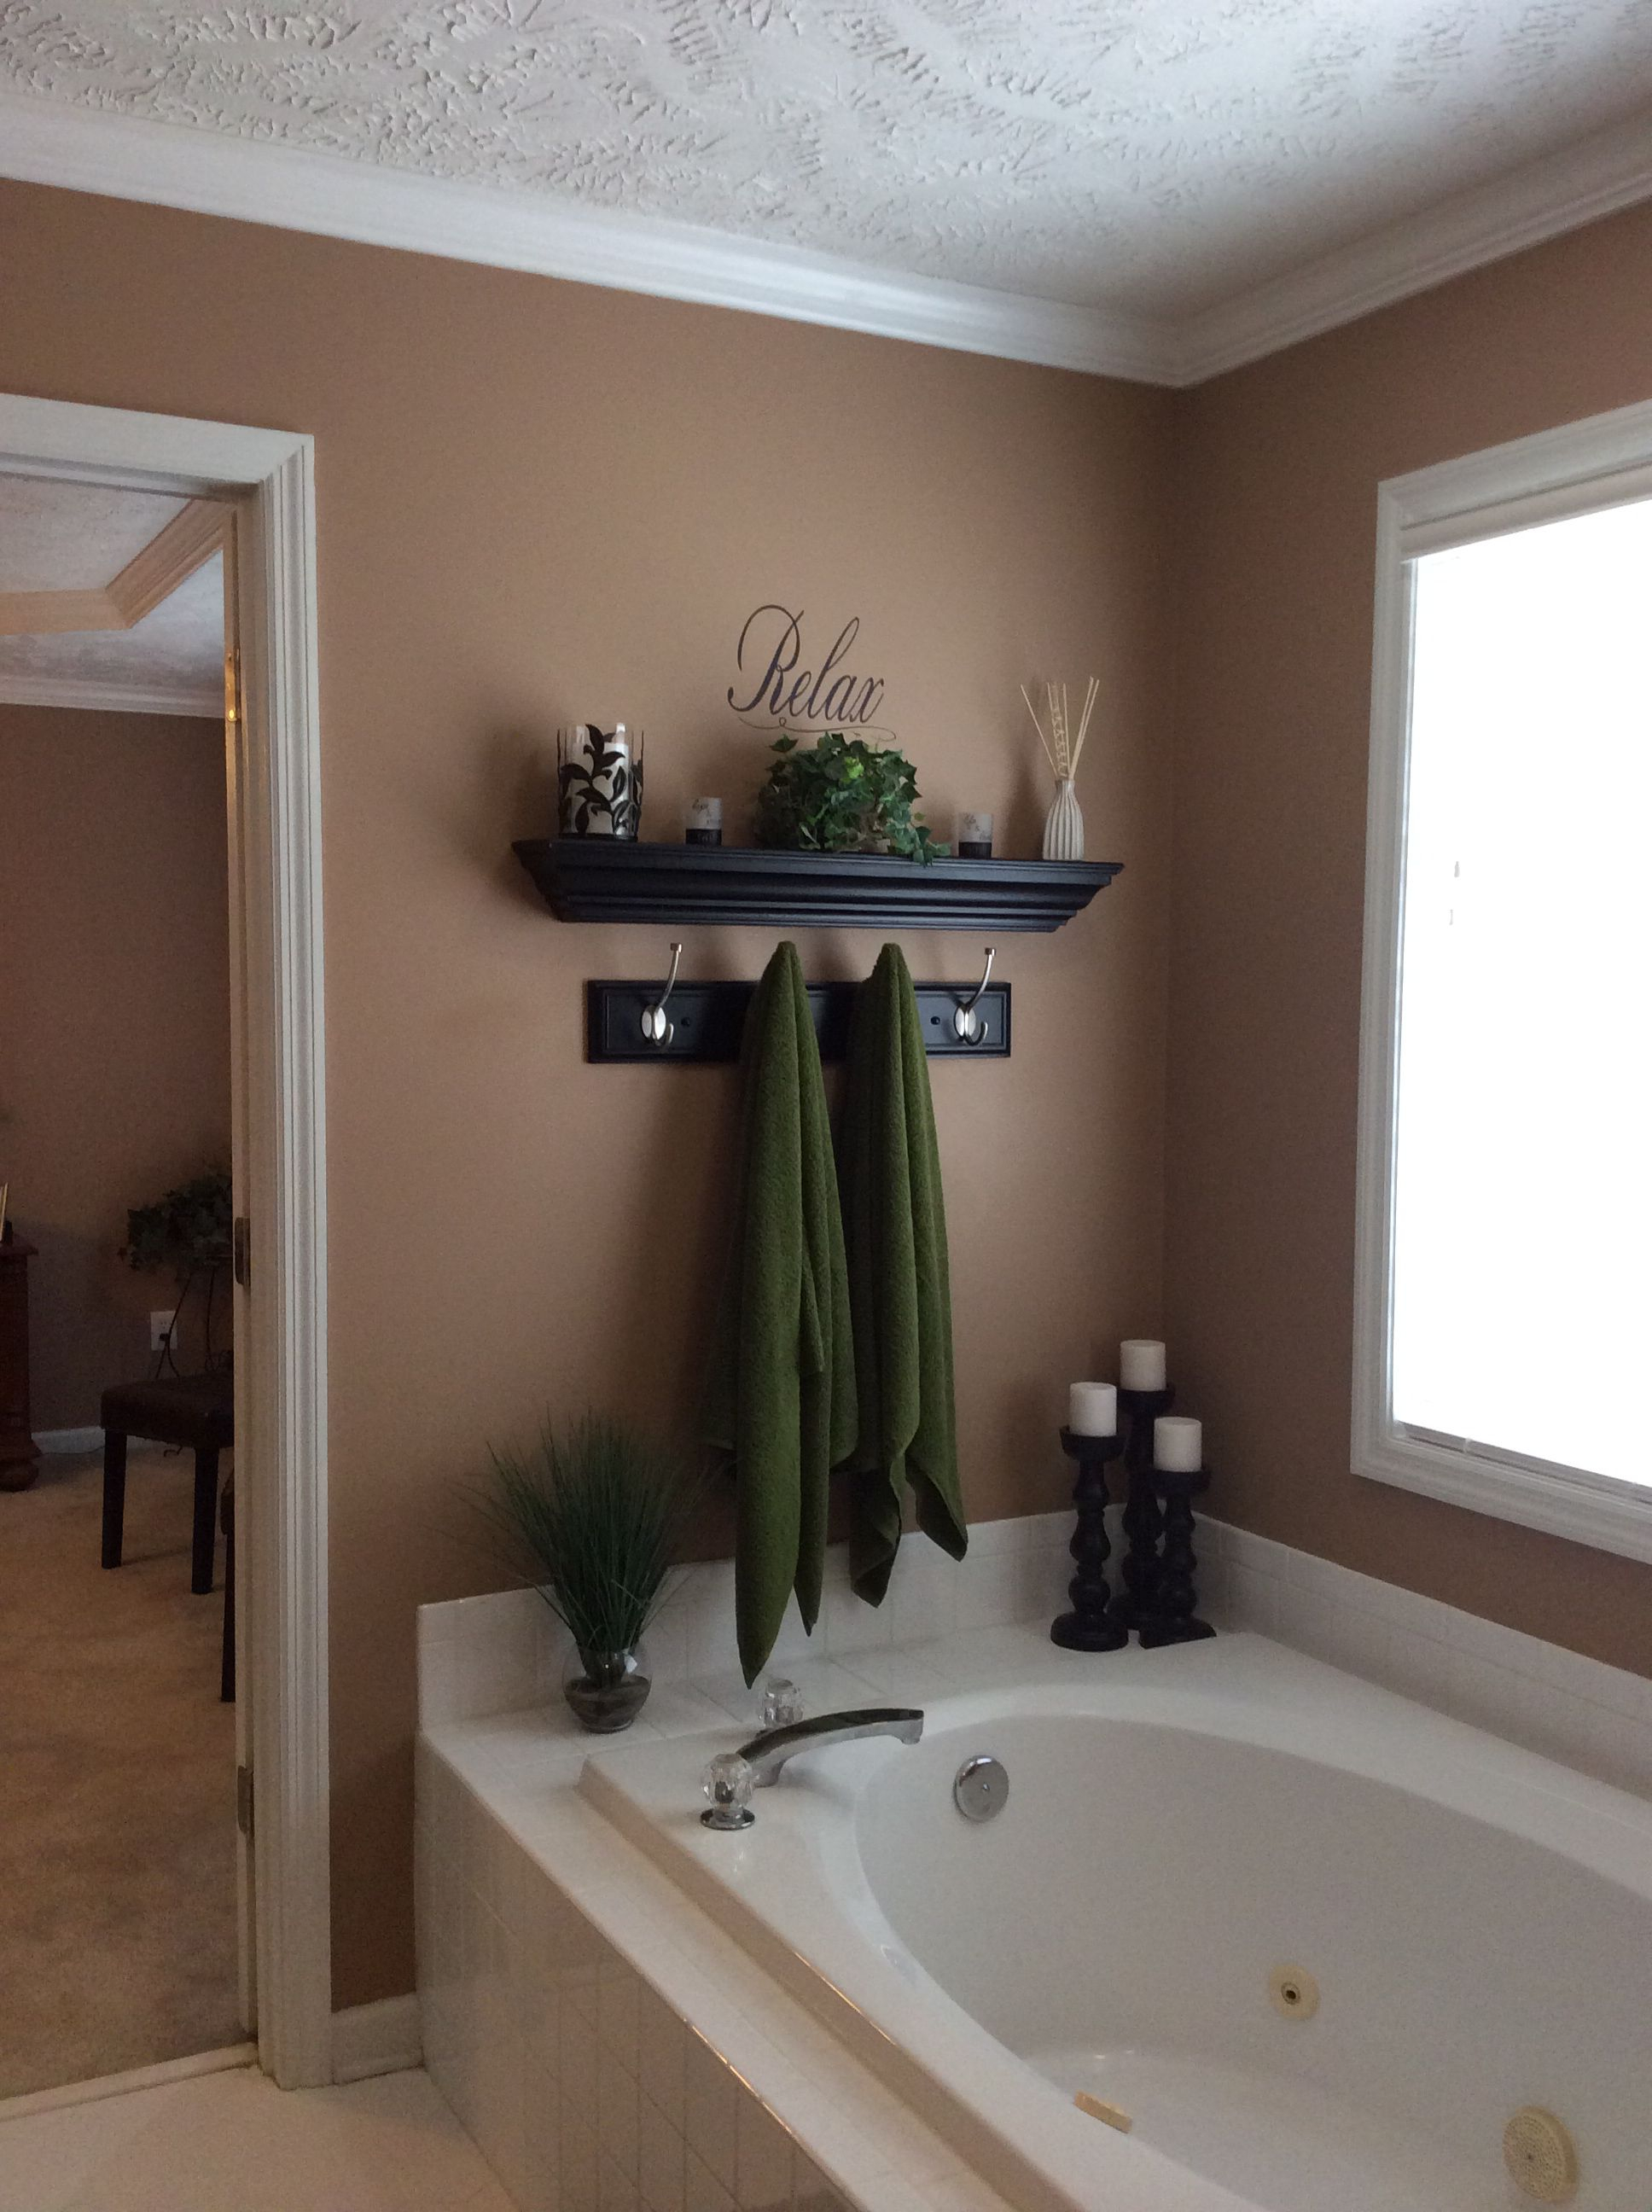 Garden Tub Wall Decor Restroom Decor